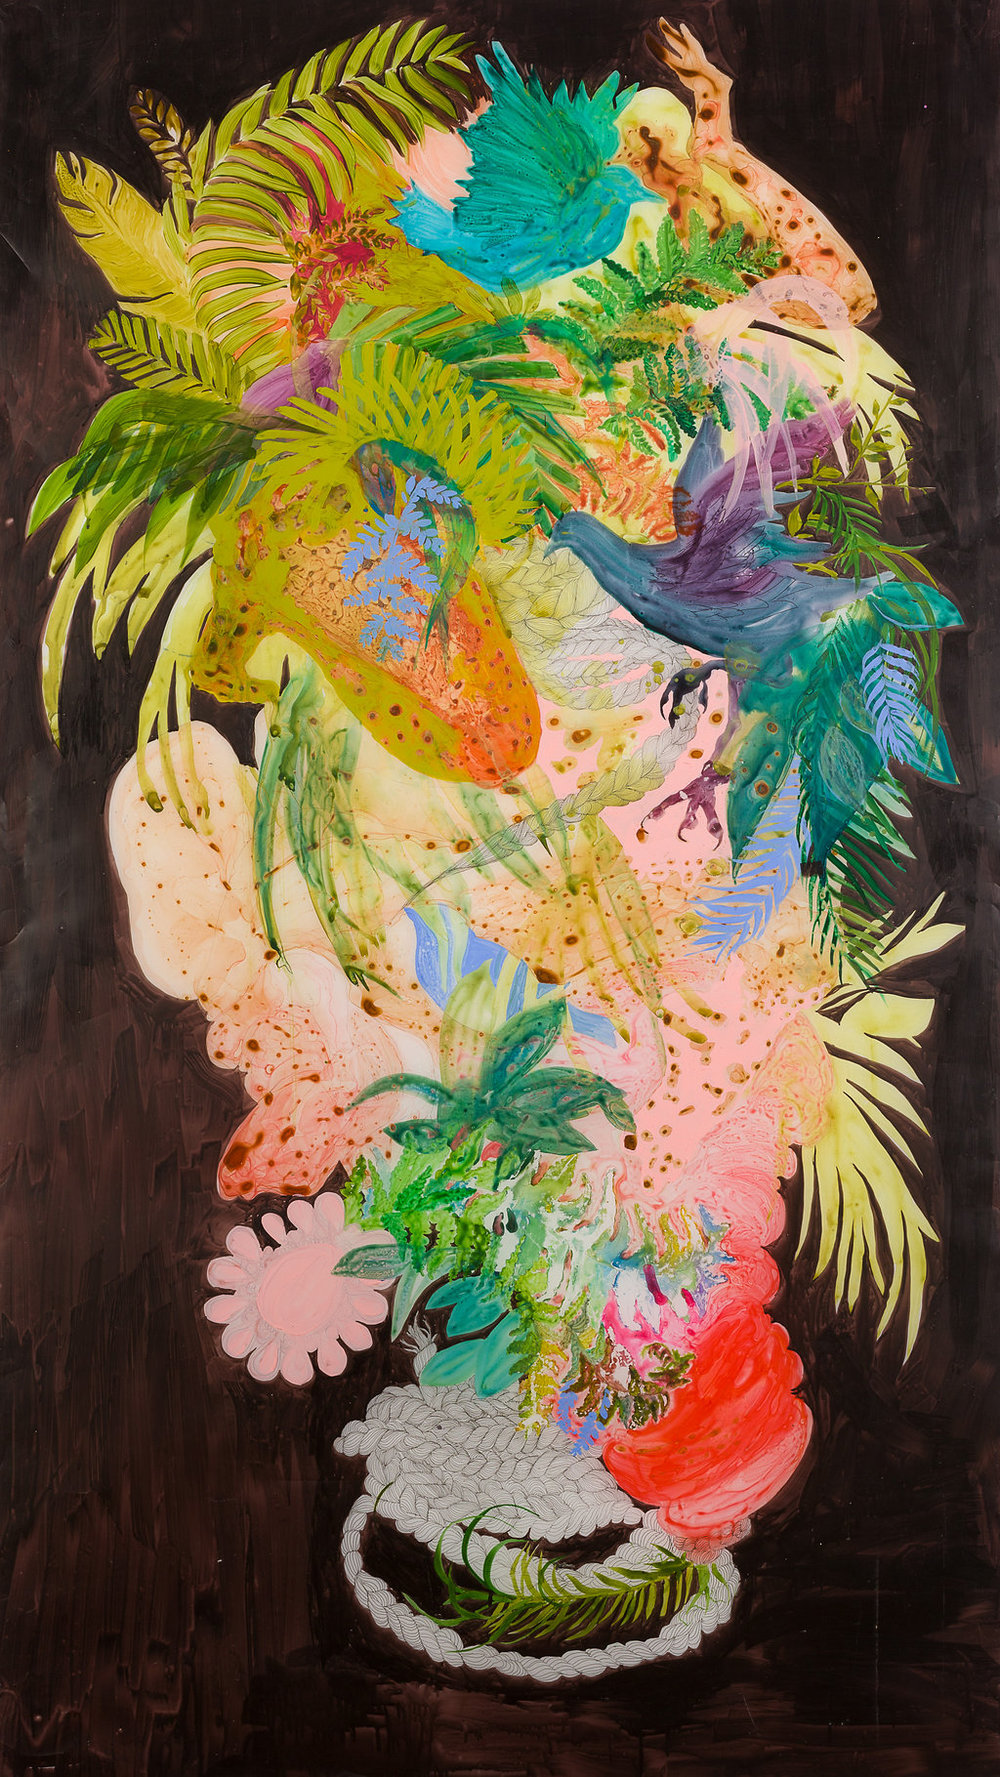 Firelei Báez,  Untitled,  2014, acrylic on vellum, 74 x 42 inches (188 x 106.7 cm)